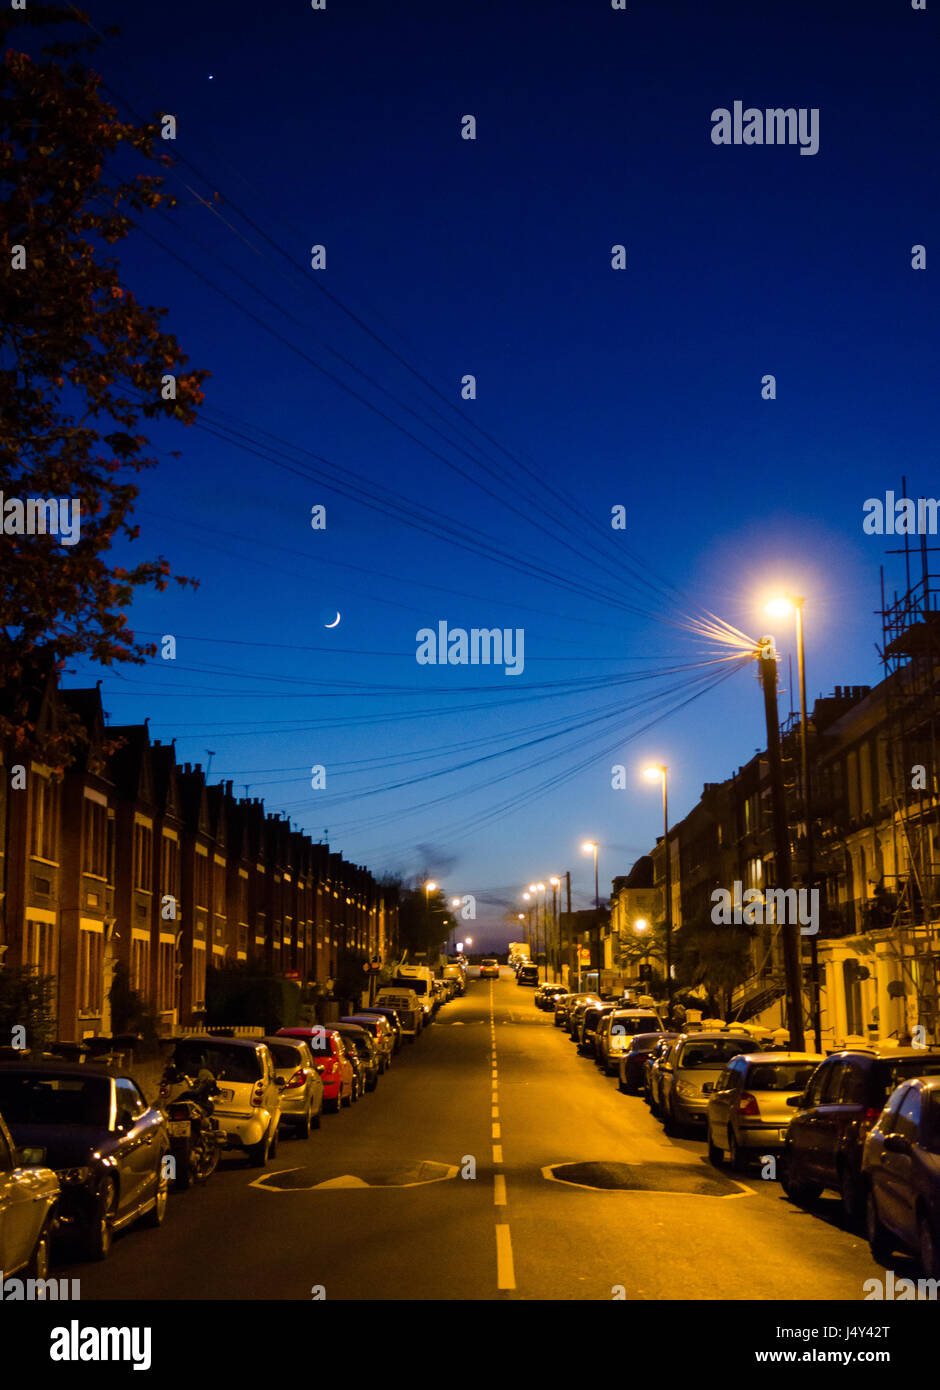 London, England, UK - April 20, 2015: The moon rises above traditional suburban terraced houses and parked cars - Stock Image